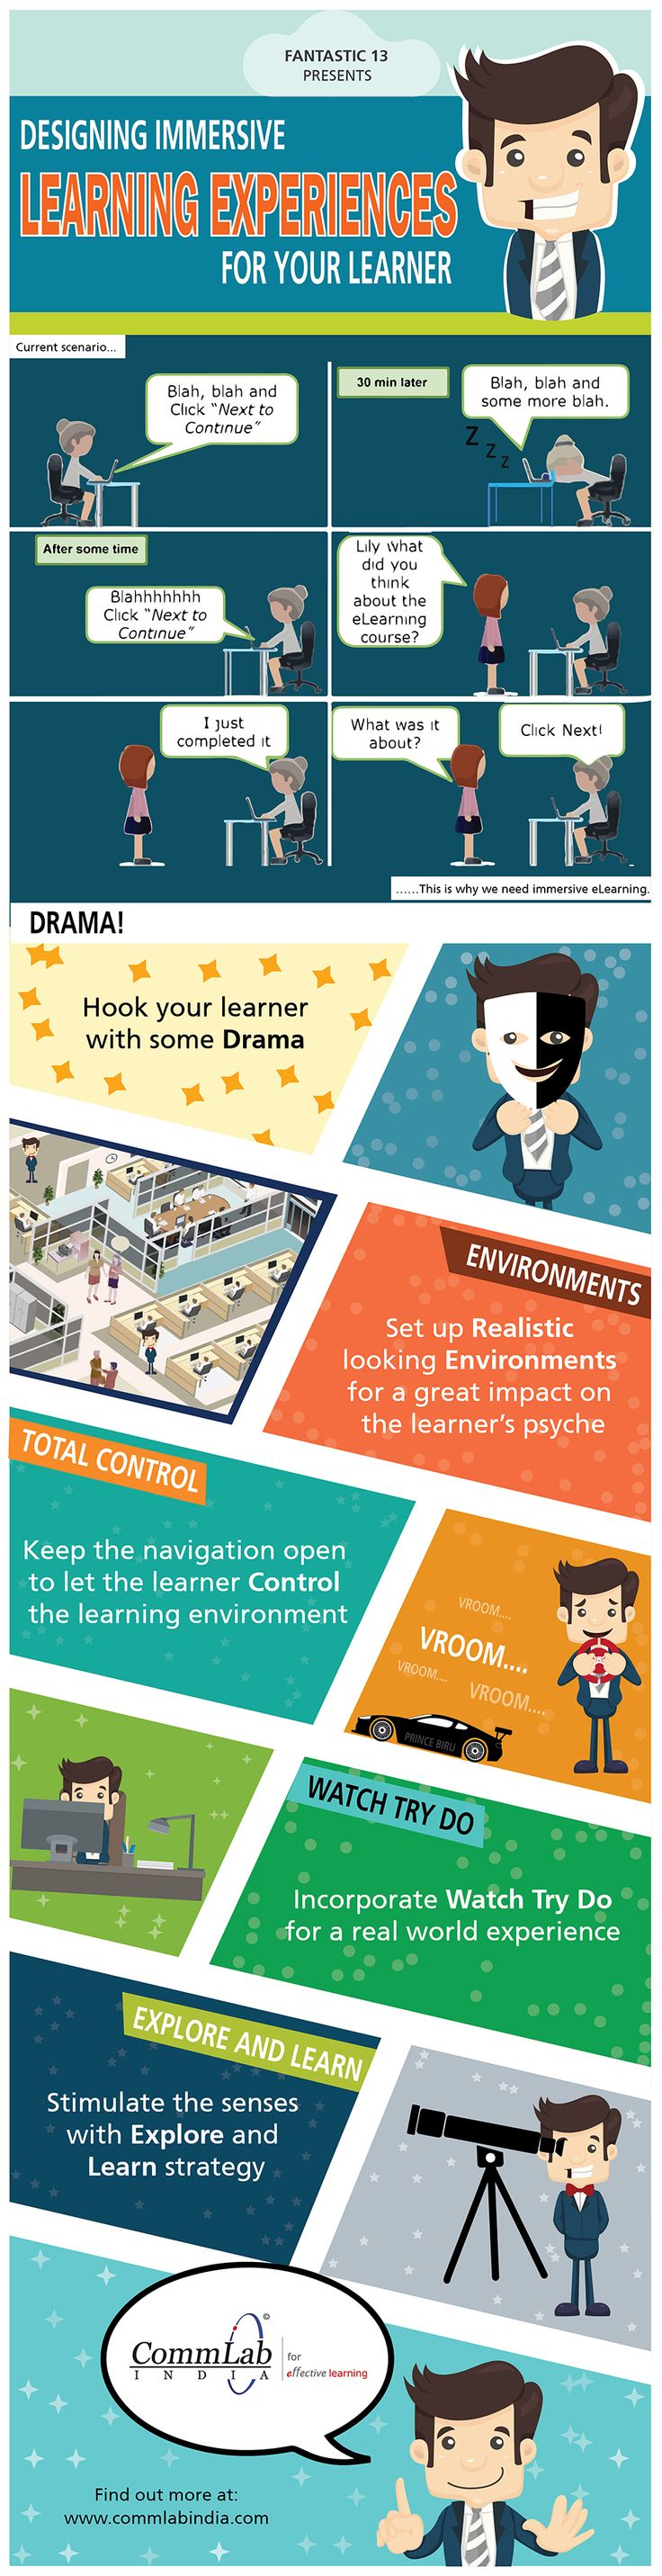 E learning poster designs - E Learning Design Tips To Create Immersive Learning Experiences Infographic